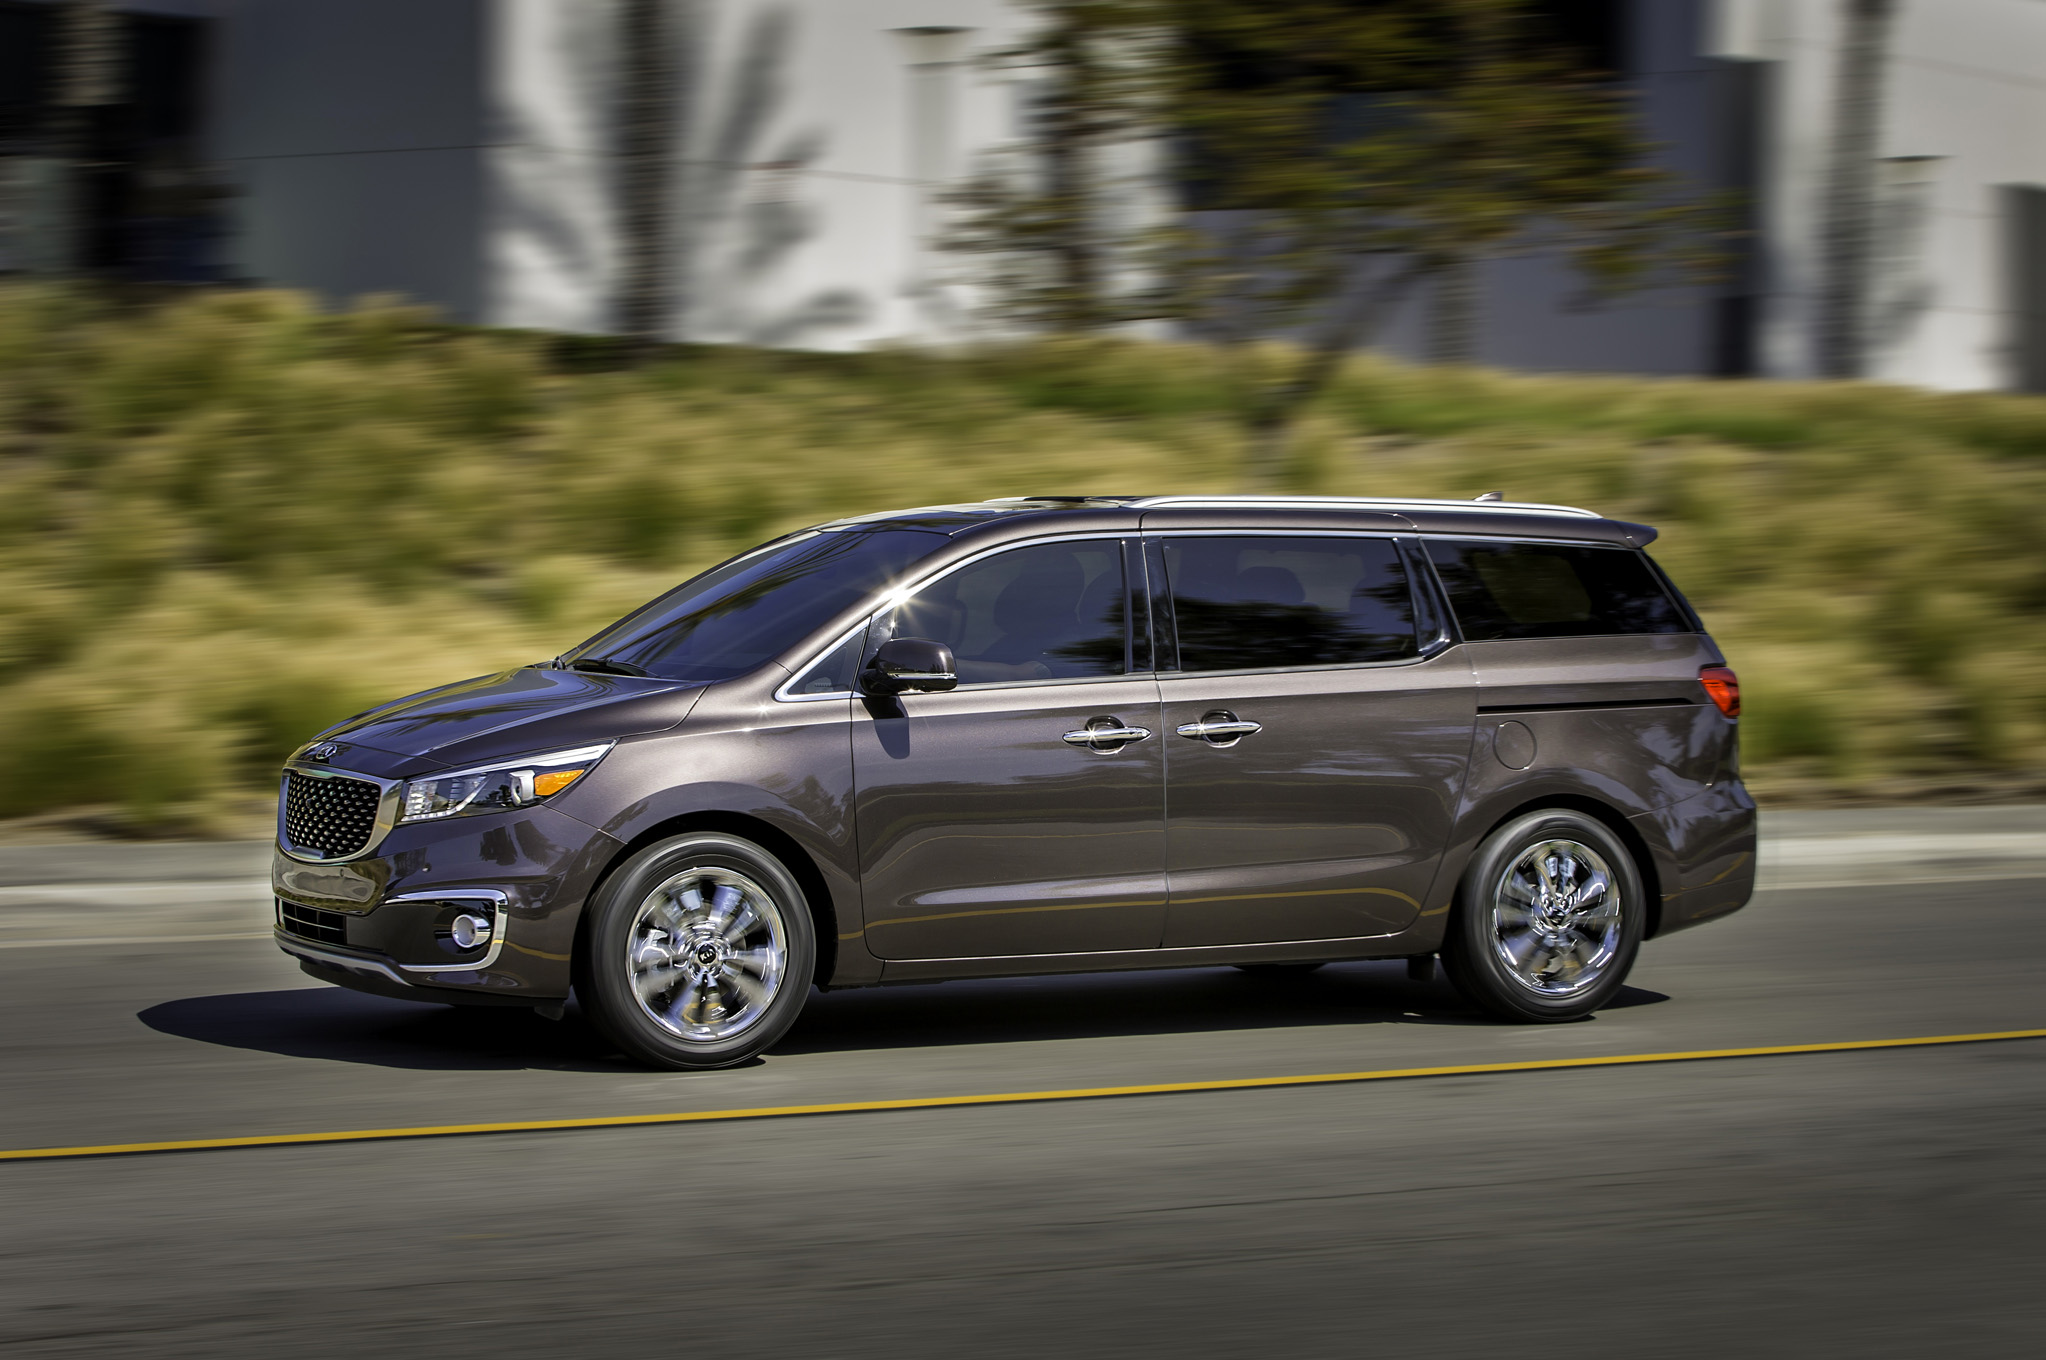 kia sedona wallpaper